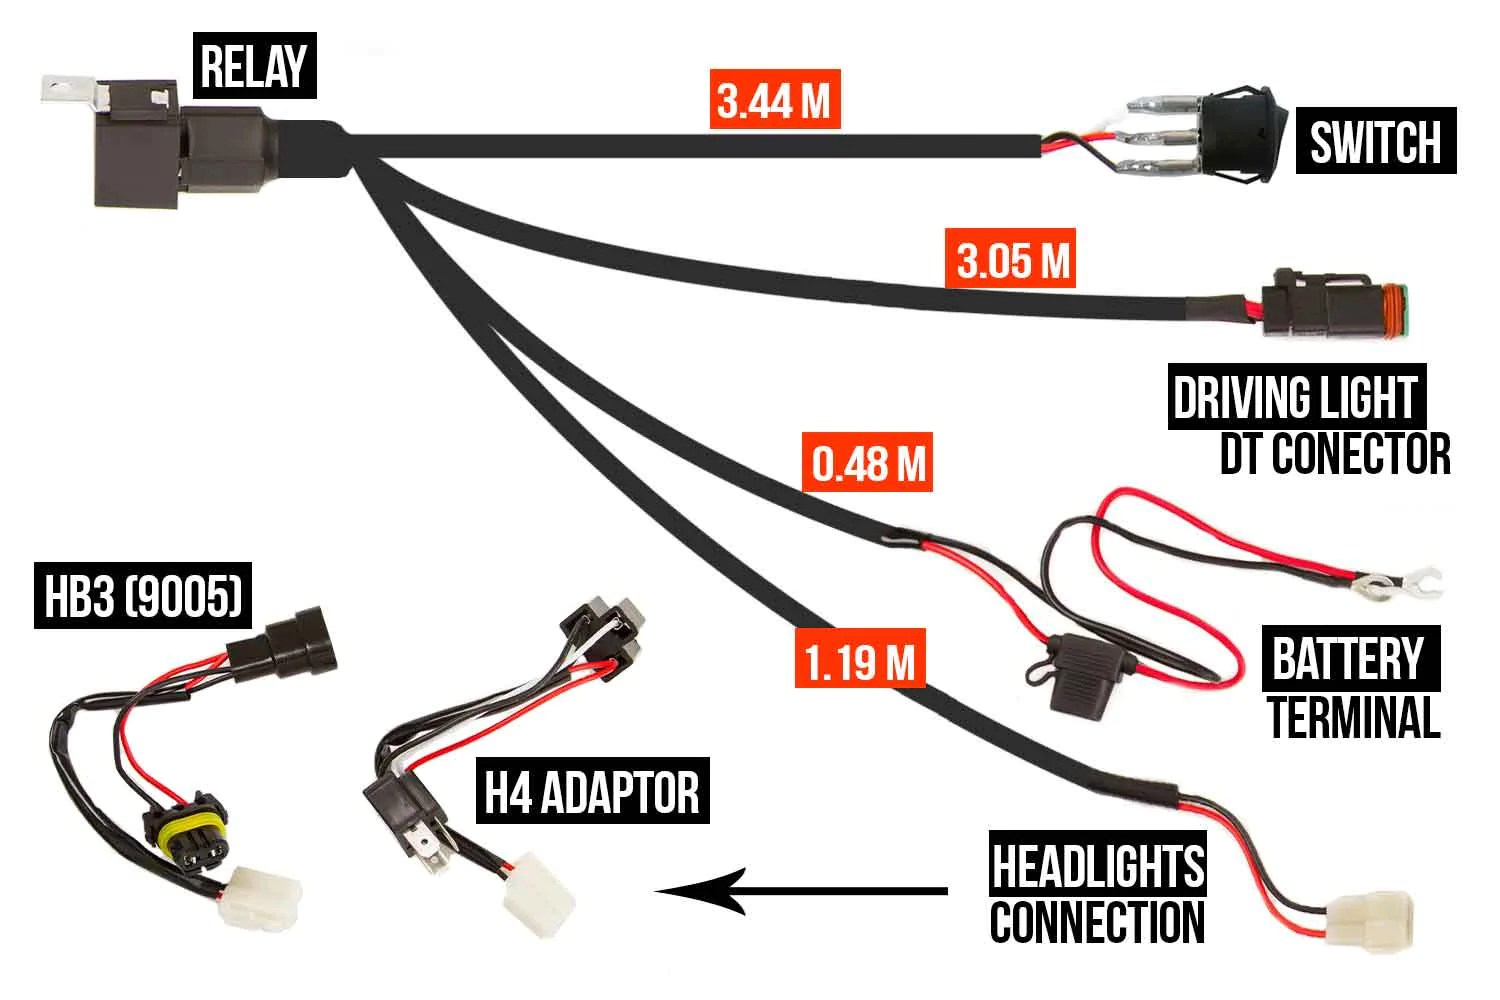 H4 HB3 Wiring Harness for LED Driving Lights | GEMTEK